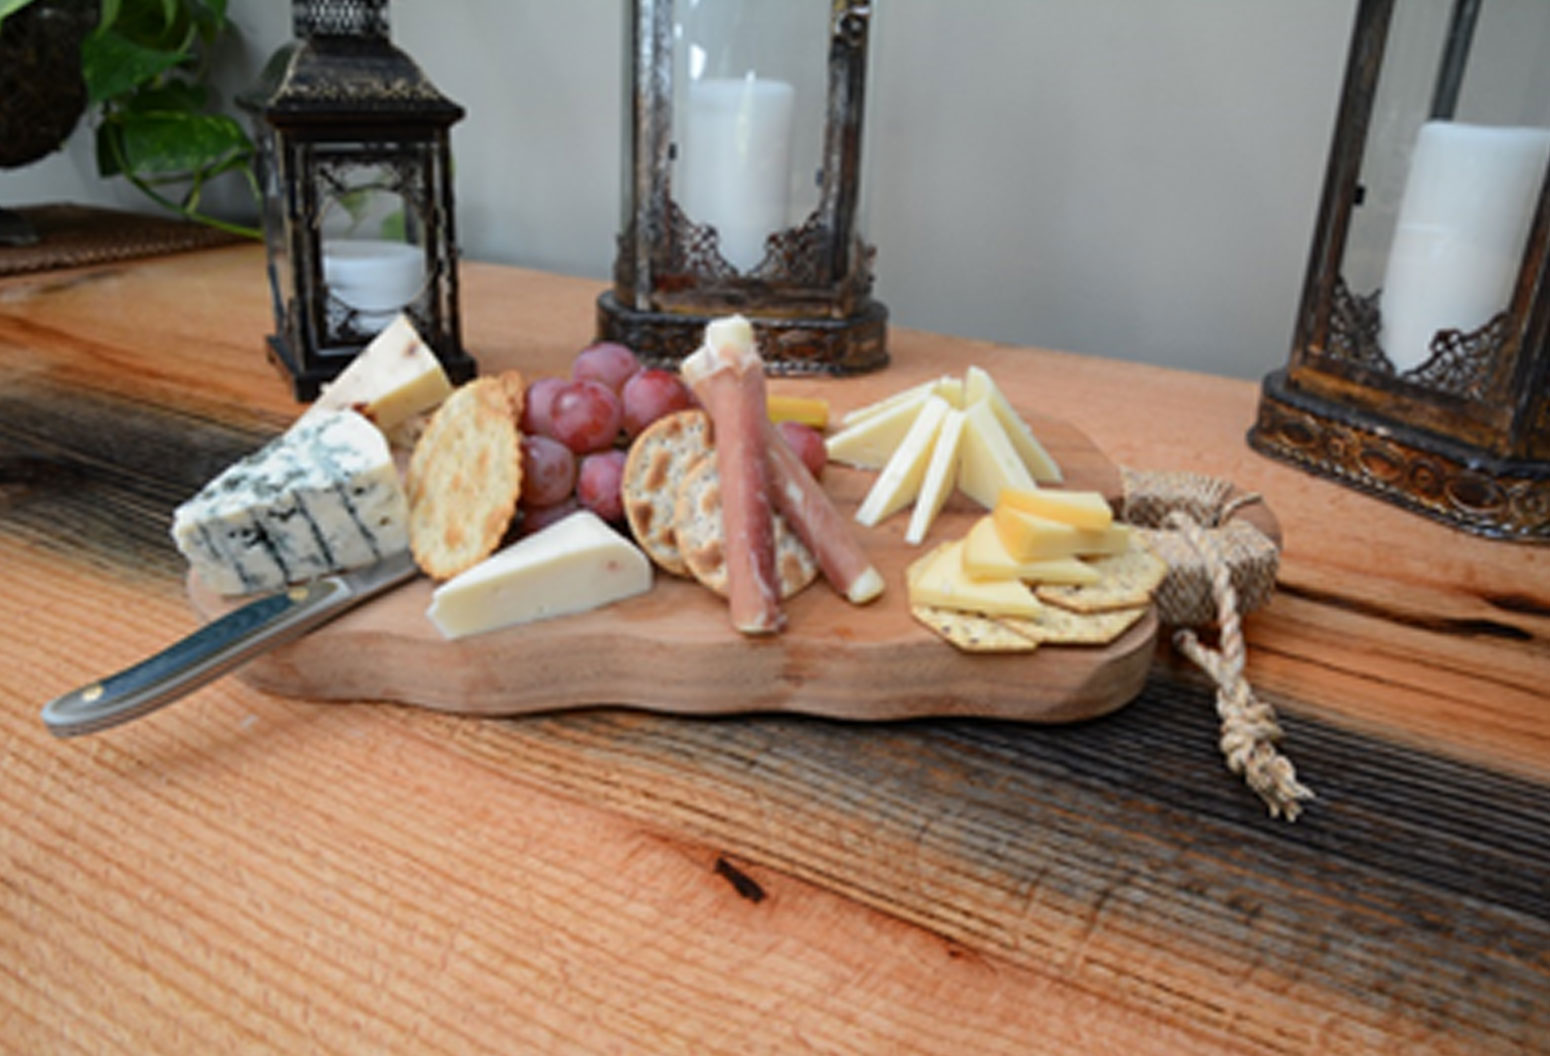 New York Cheese Board, Magnolia Place Bed & Breakfast, Finger Lakes, NY